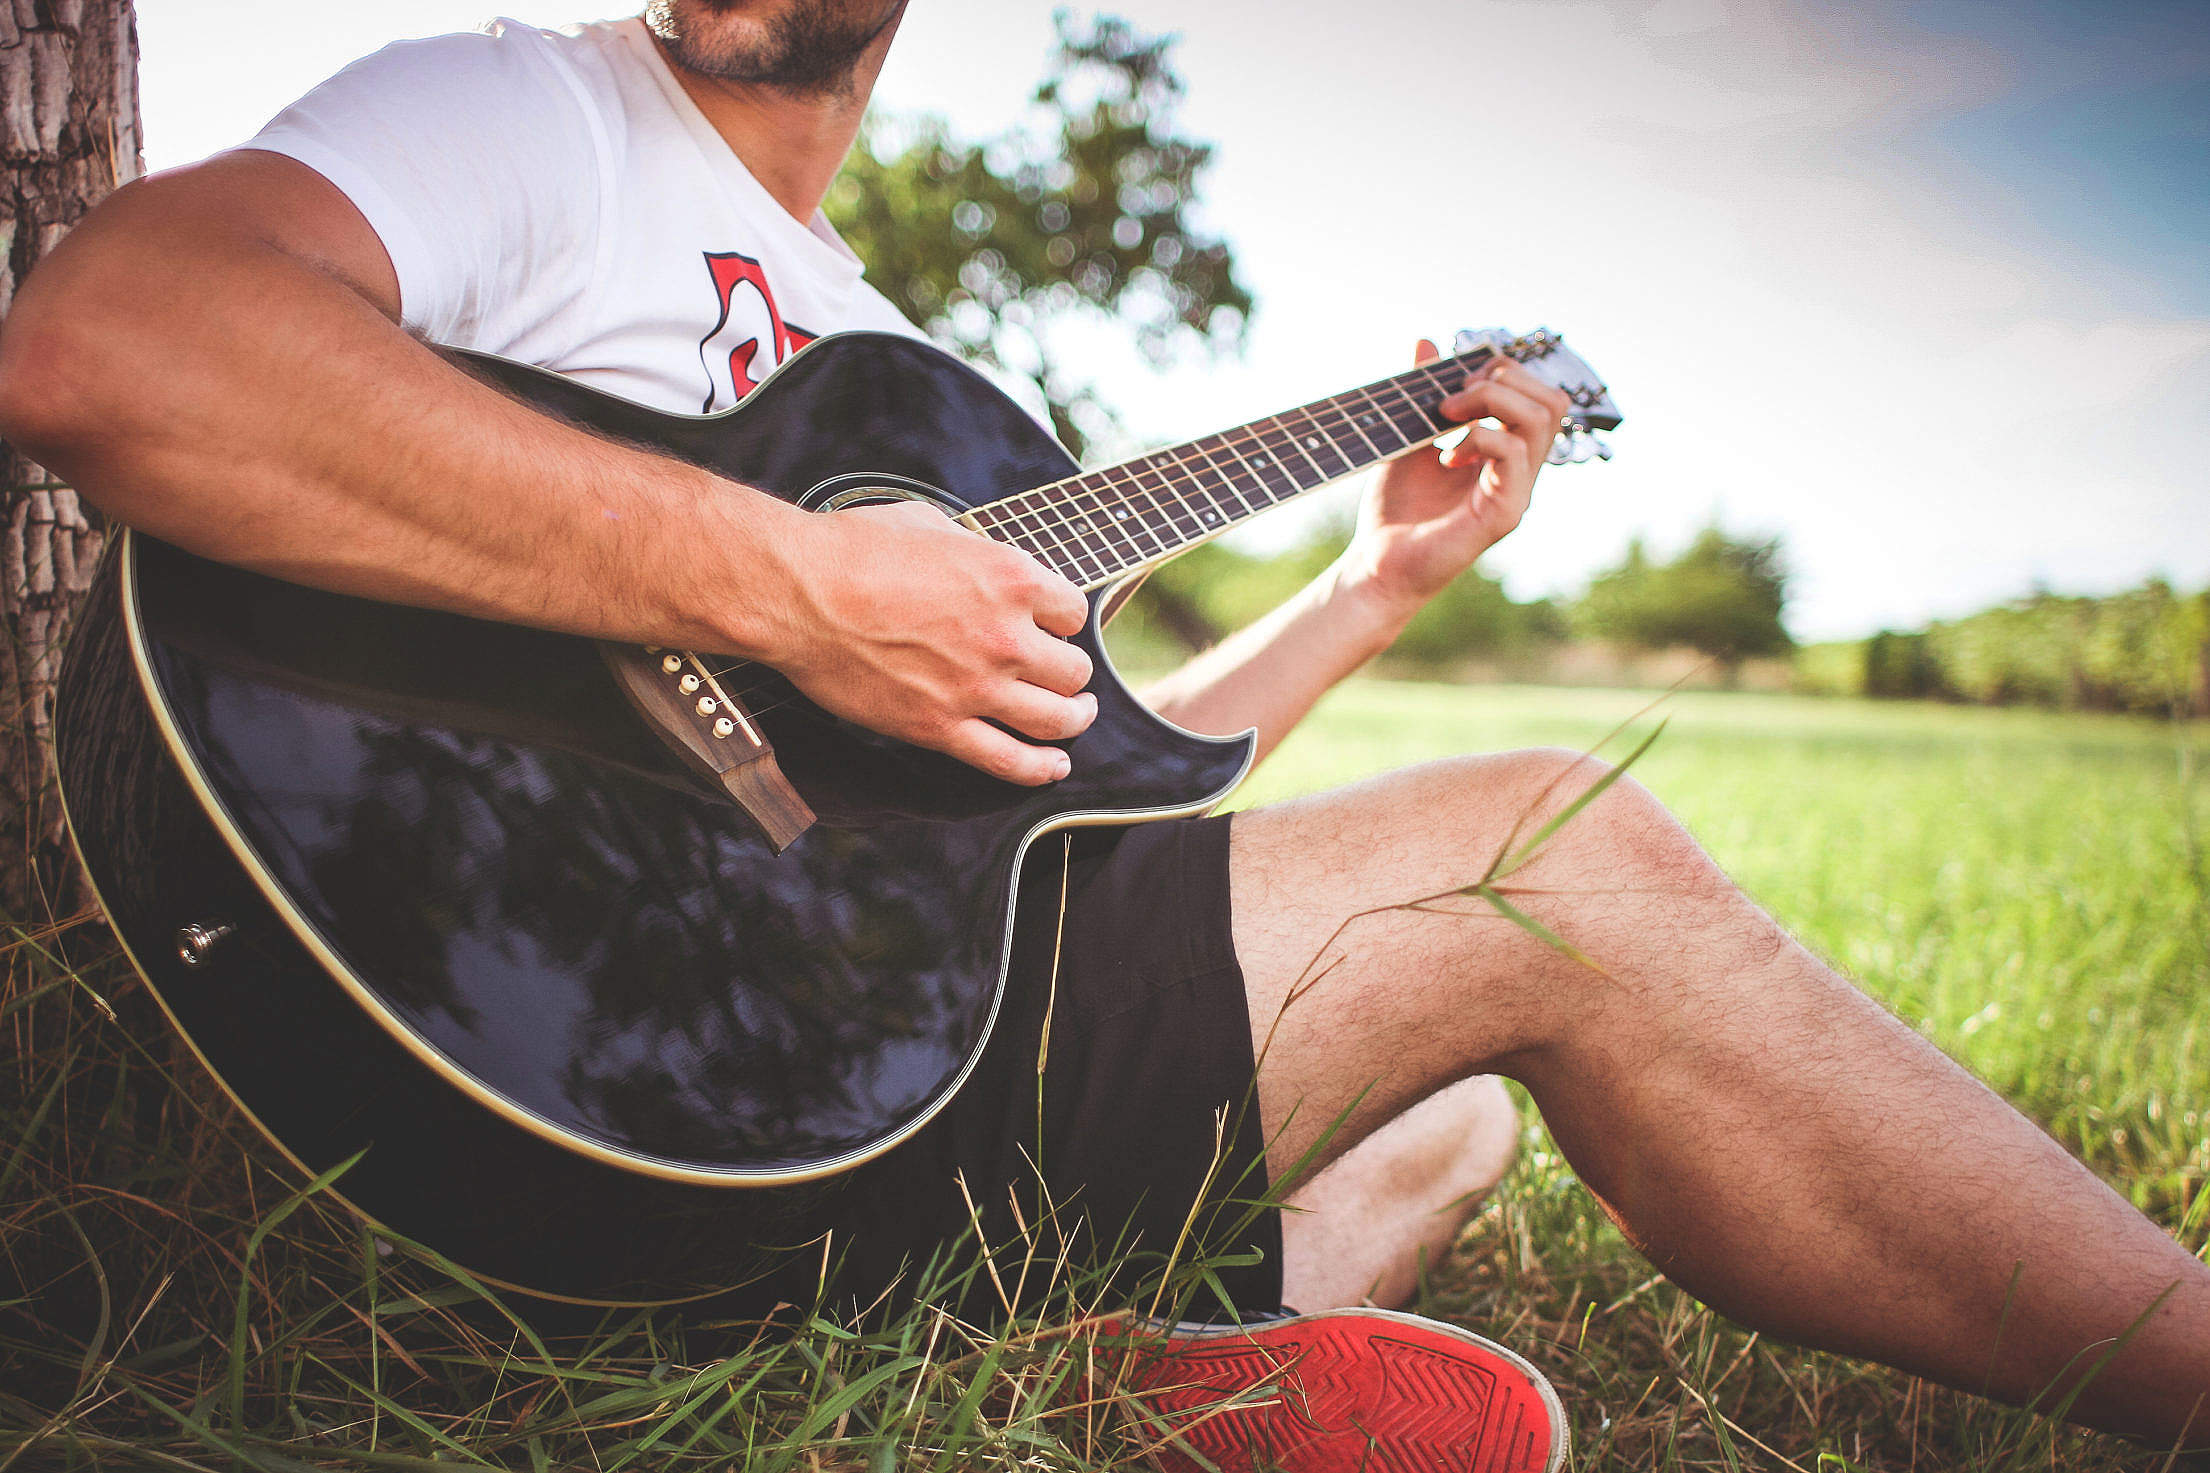 Guy Playing Acoustic Guitar in Nature Free Stock Photo